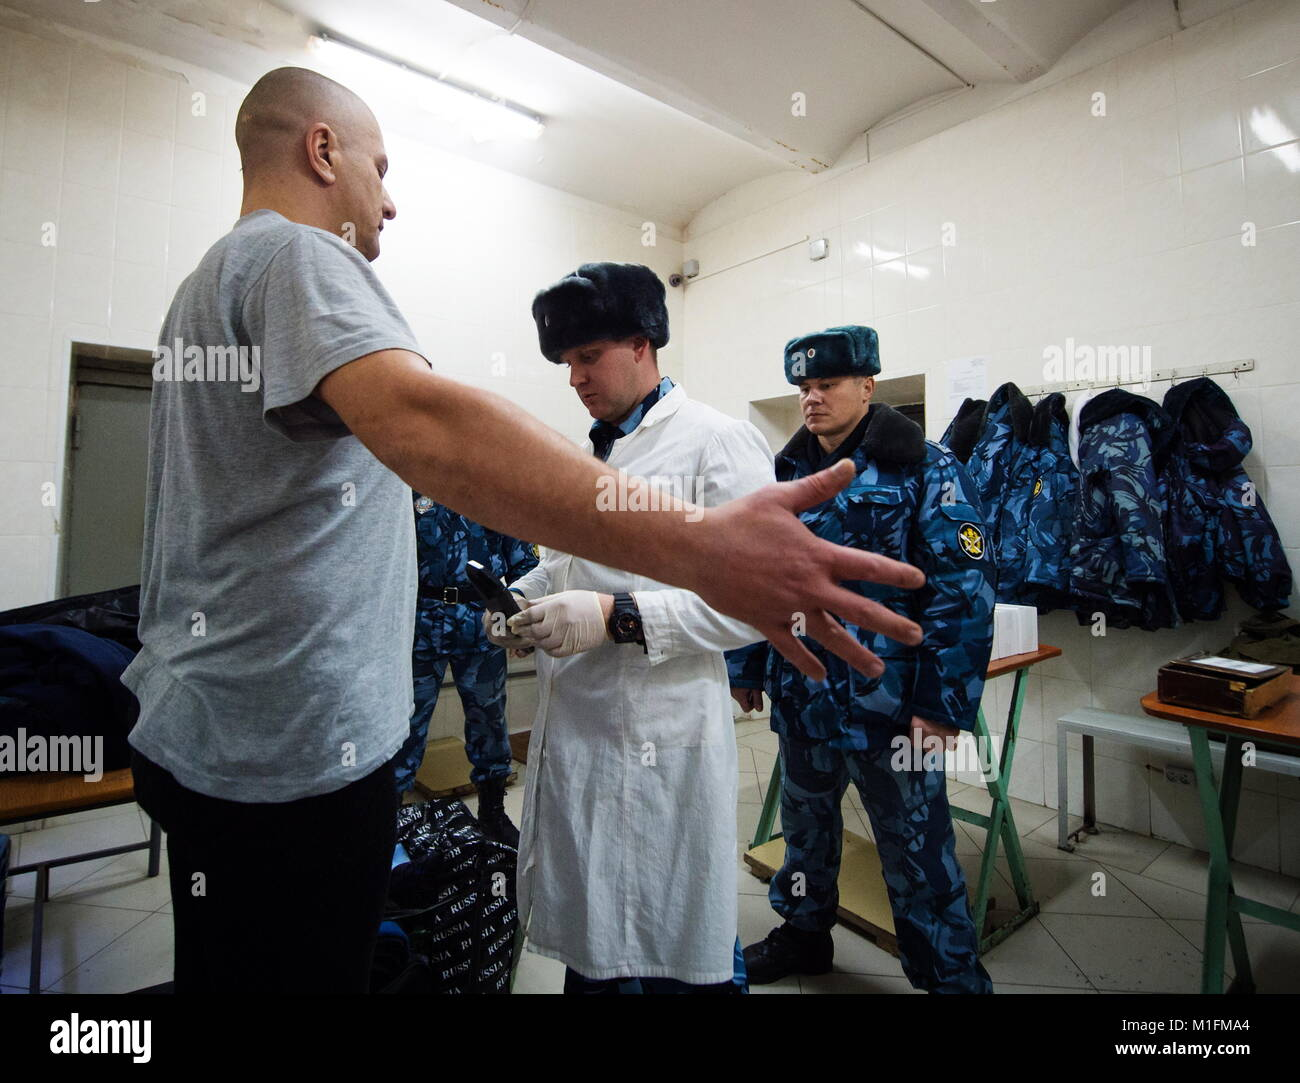 VLADIVOSTOK, RUSSIA - JANUARY 29, 2018: Employees of the Prisoner Escort  Service at the Main Directorate of the Russian Federal Penitentiary Service  examine ...